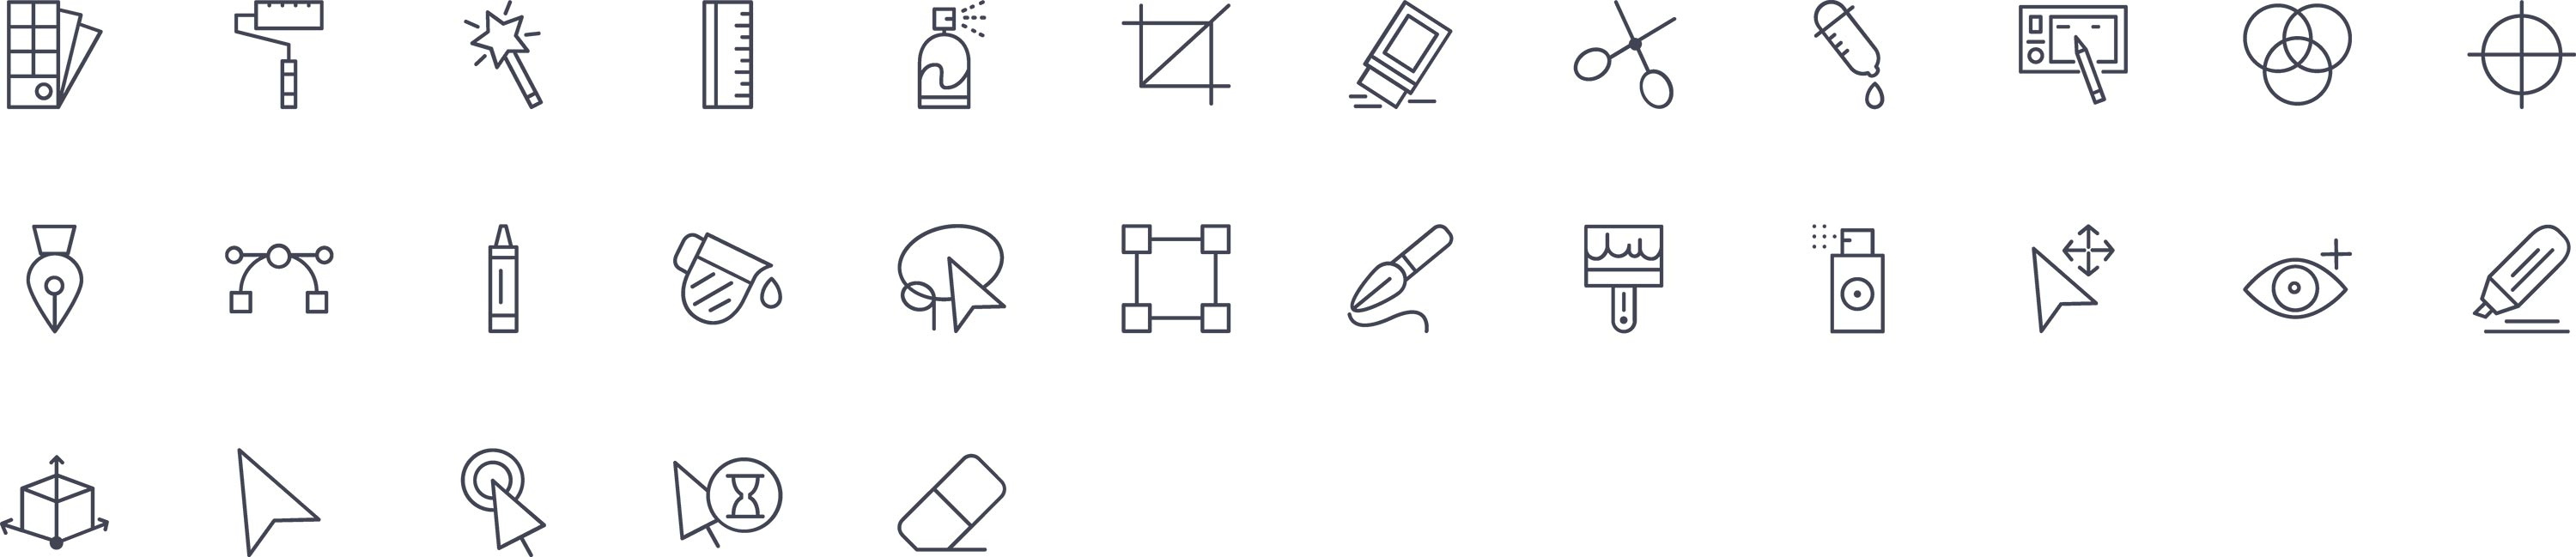 Graphic Tools Line Icons